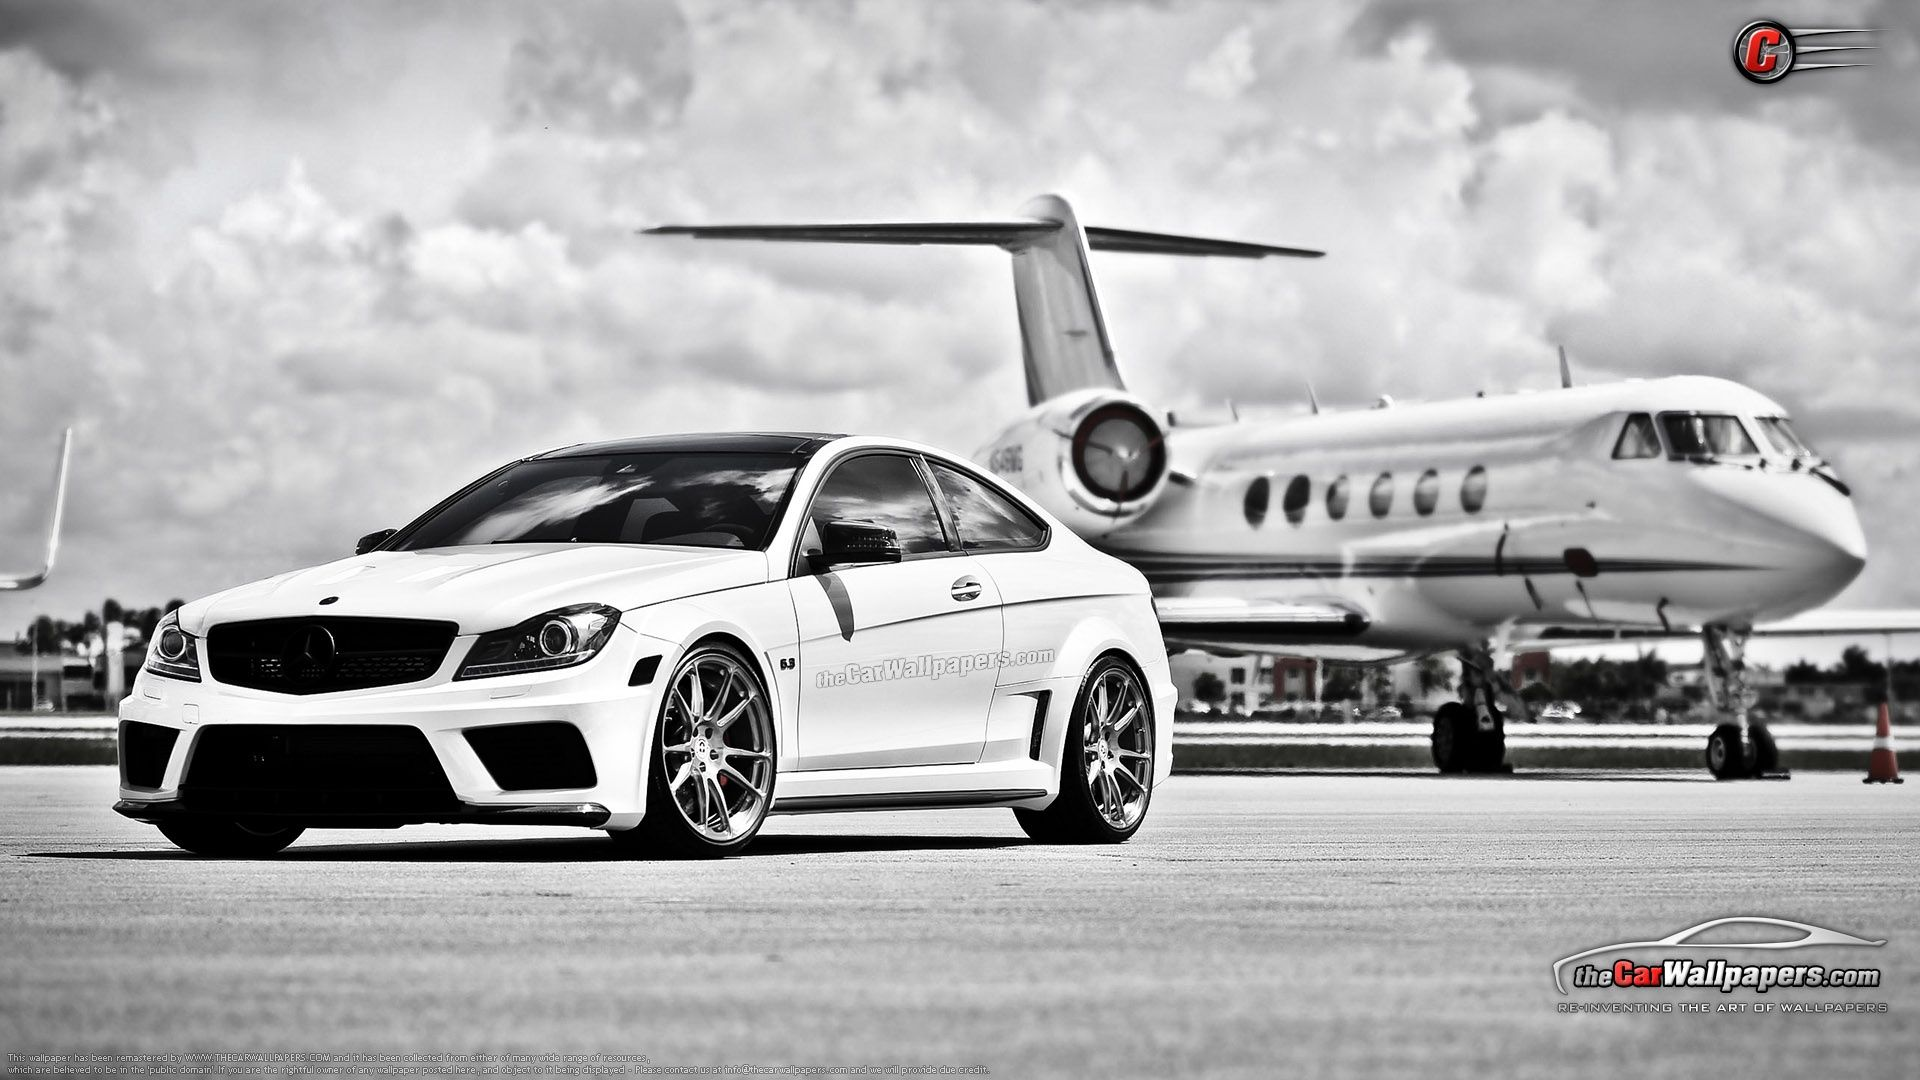 1000 images about c63 bs on pinterest cars mercedes benz amg and coupe